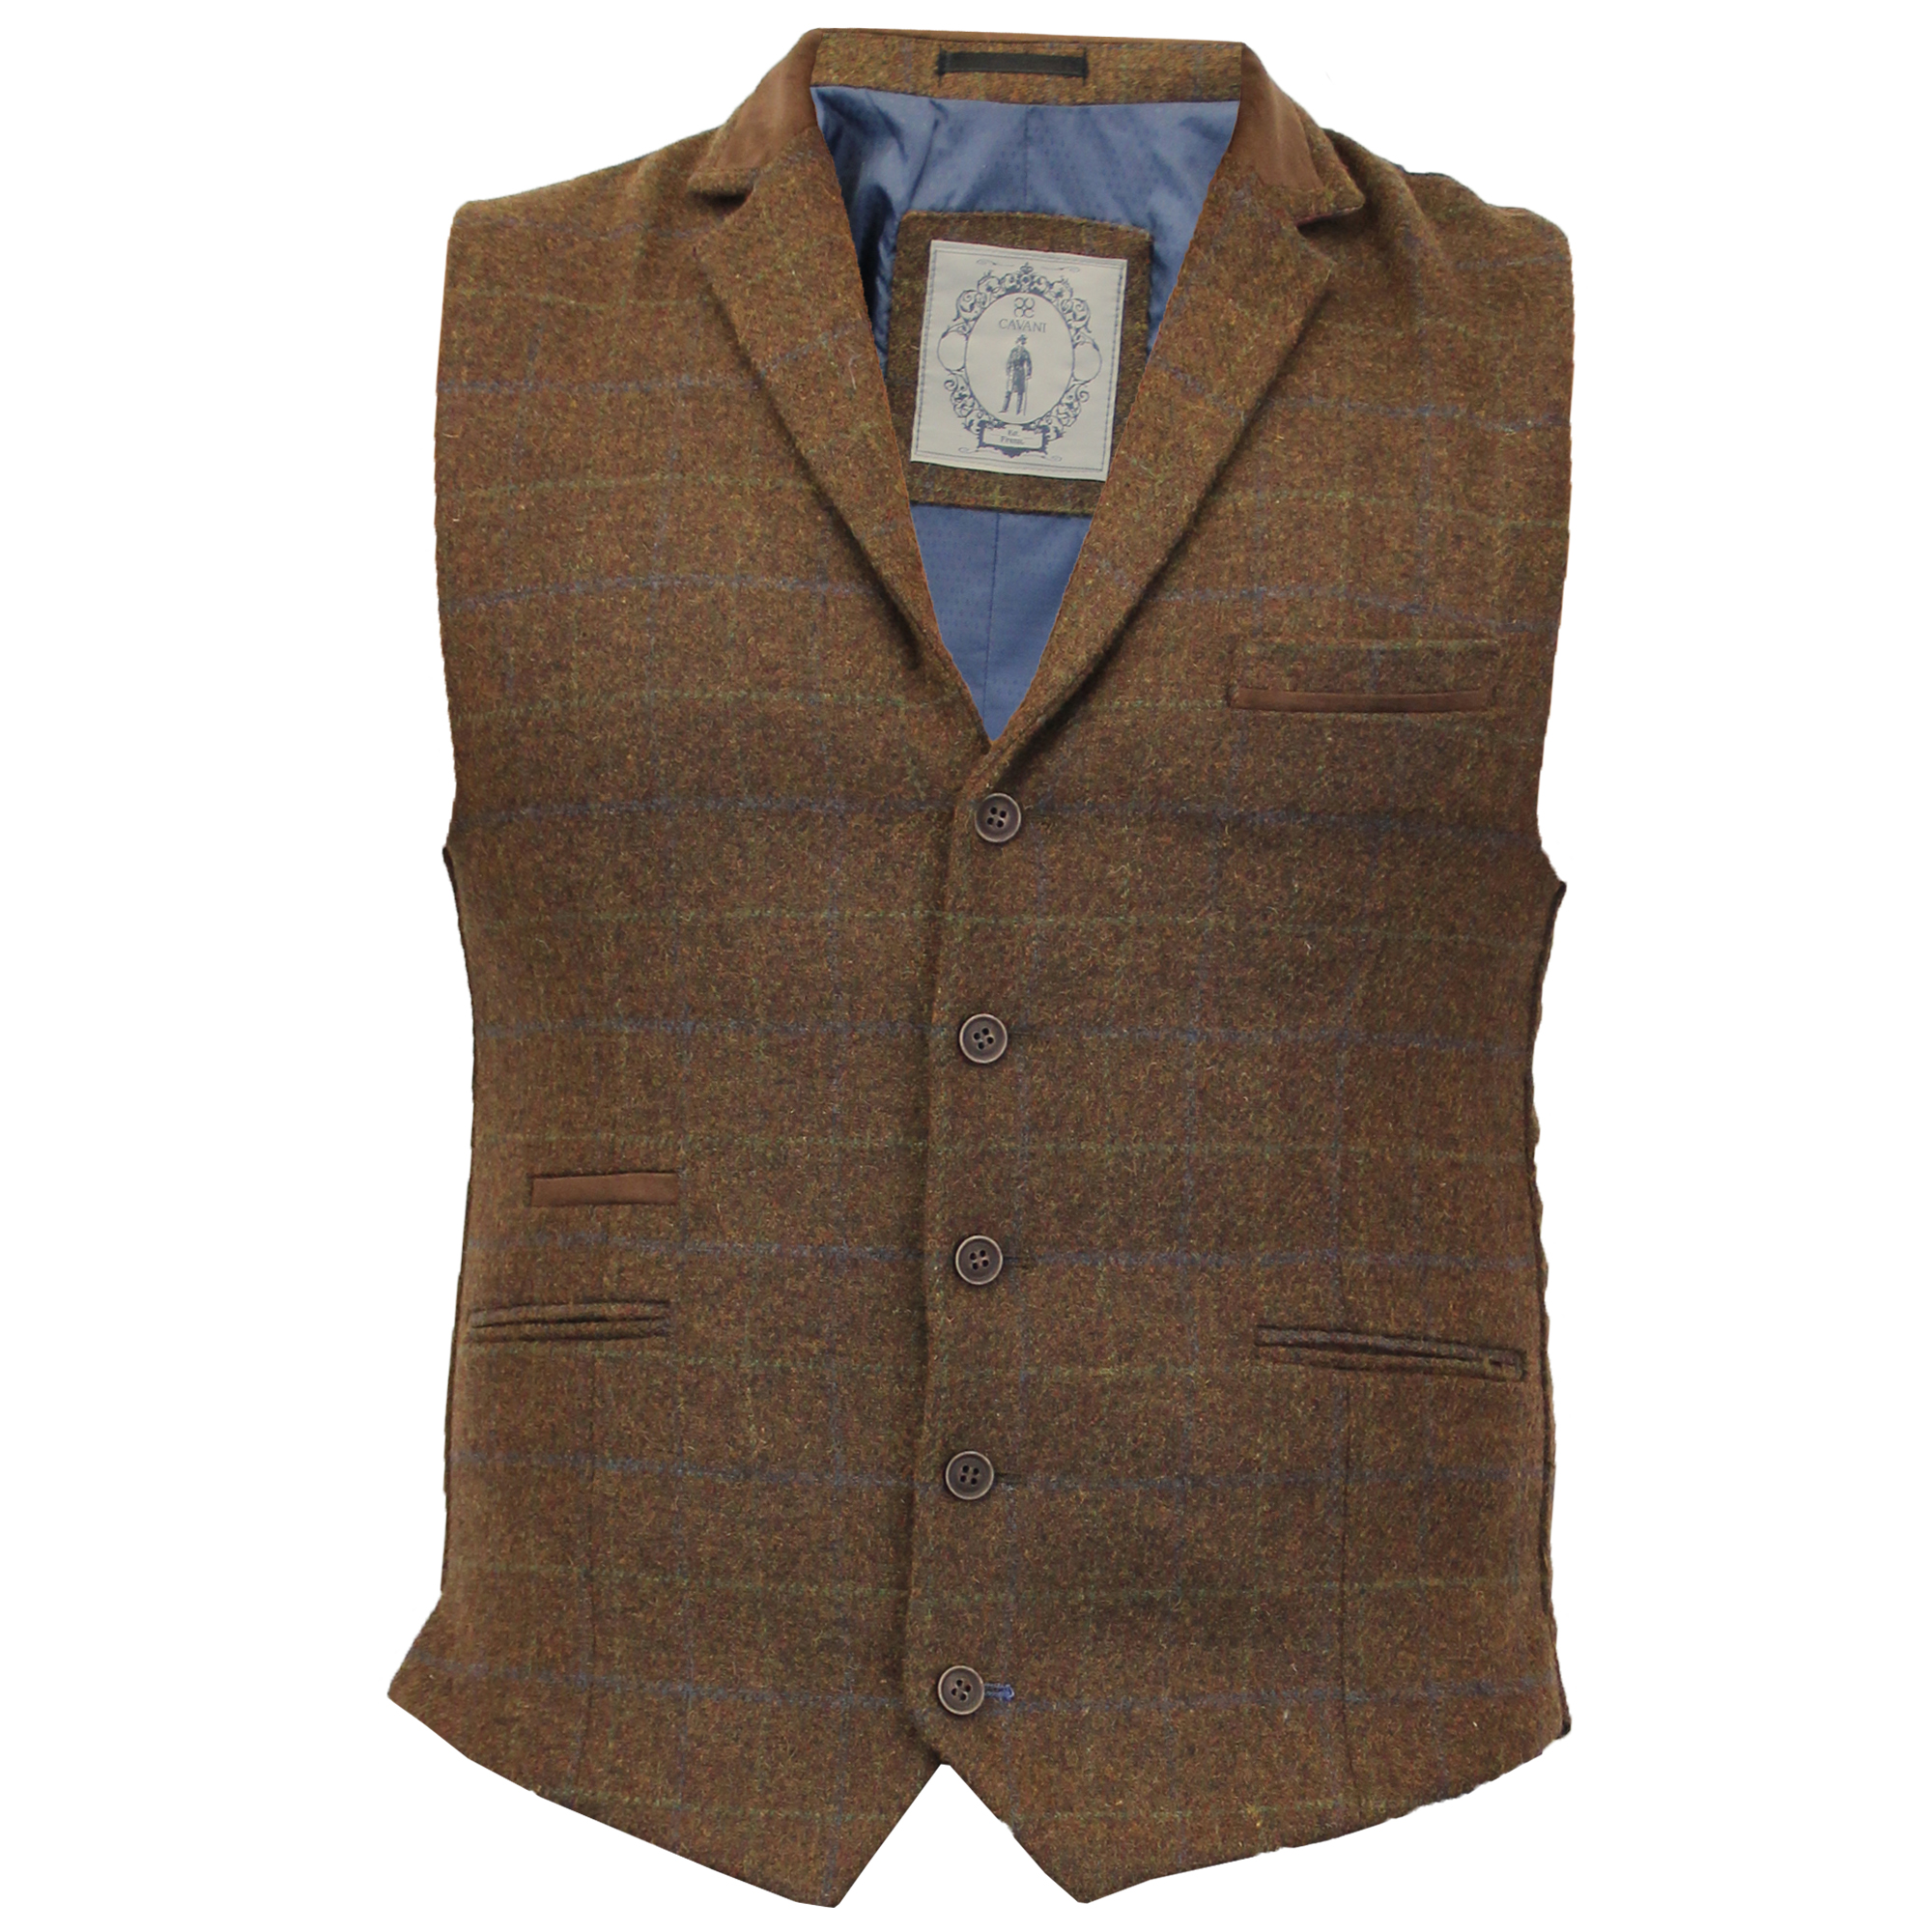 Discover the range of men's waistcoats from ASOS. Shop from a variety of smart waistcoats, casual waistcoats and designer men's vests.